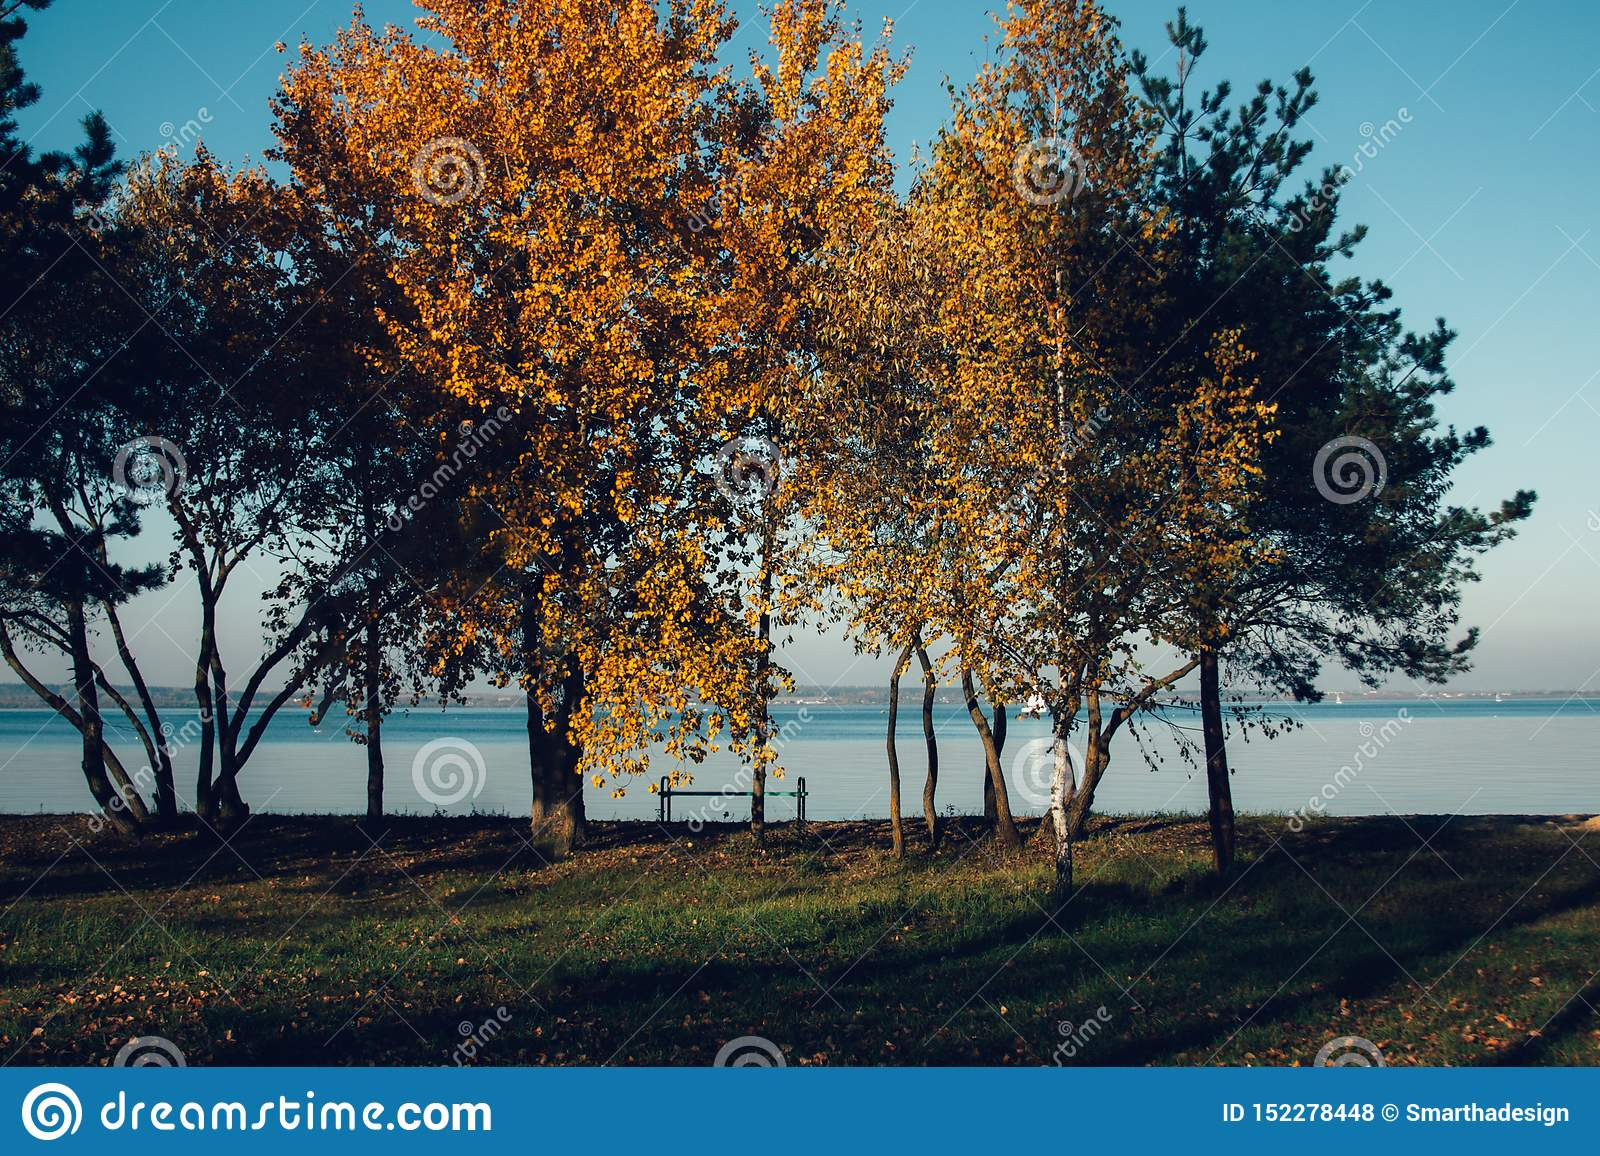 Beautiful autumn lake landscape and sunset. Blue waves and horizon line on water. Beautiful nature background